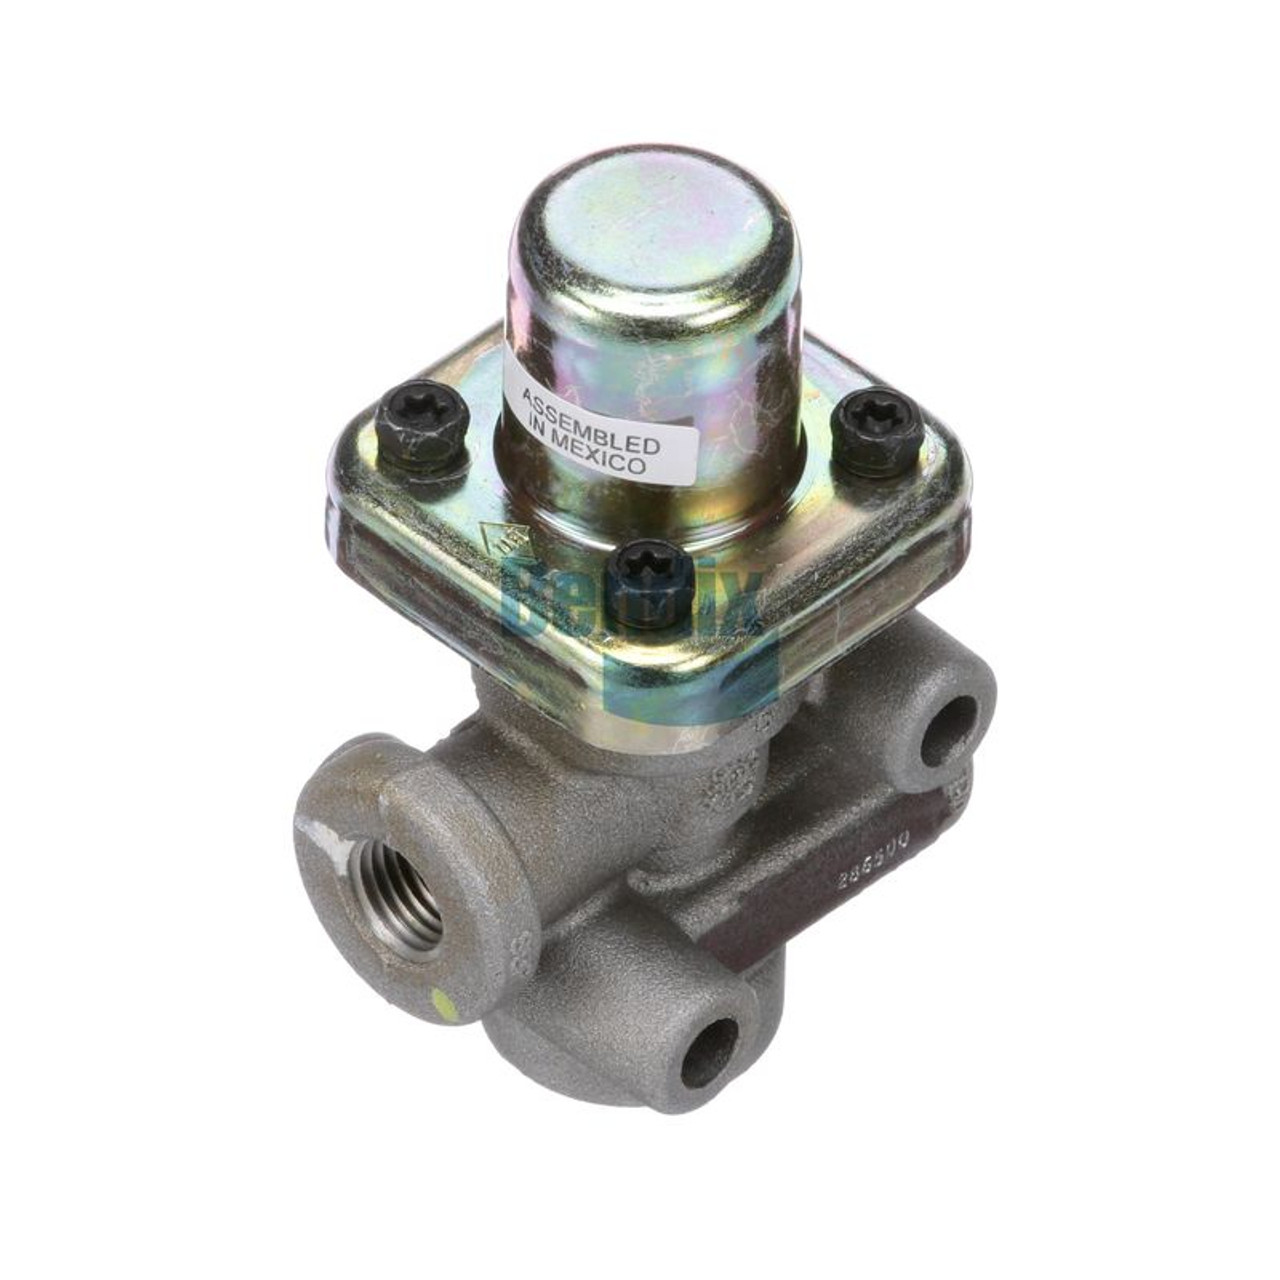 PR-4 Pressure Protection Valve- 85psi *Genuine Bendix* OR286500X- replaces 286500N / 286500RX